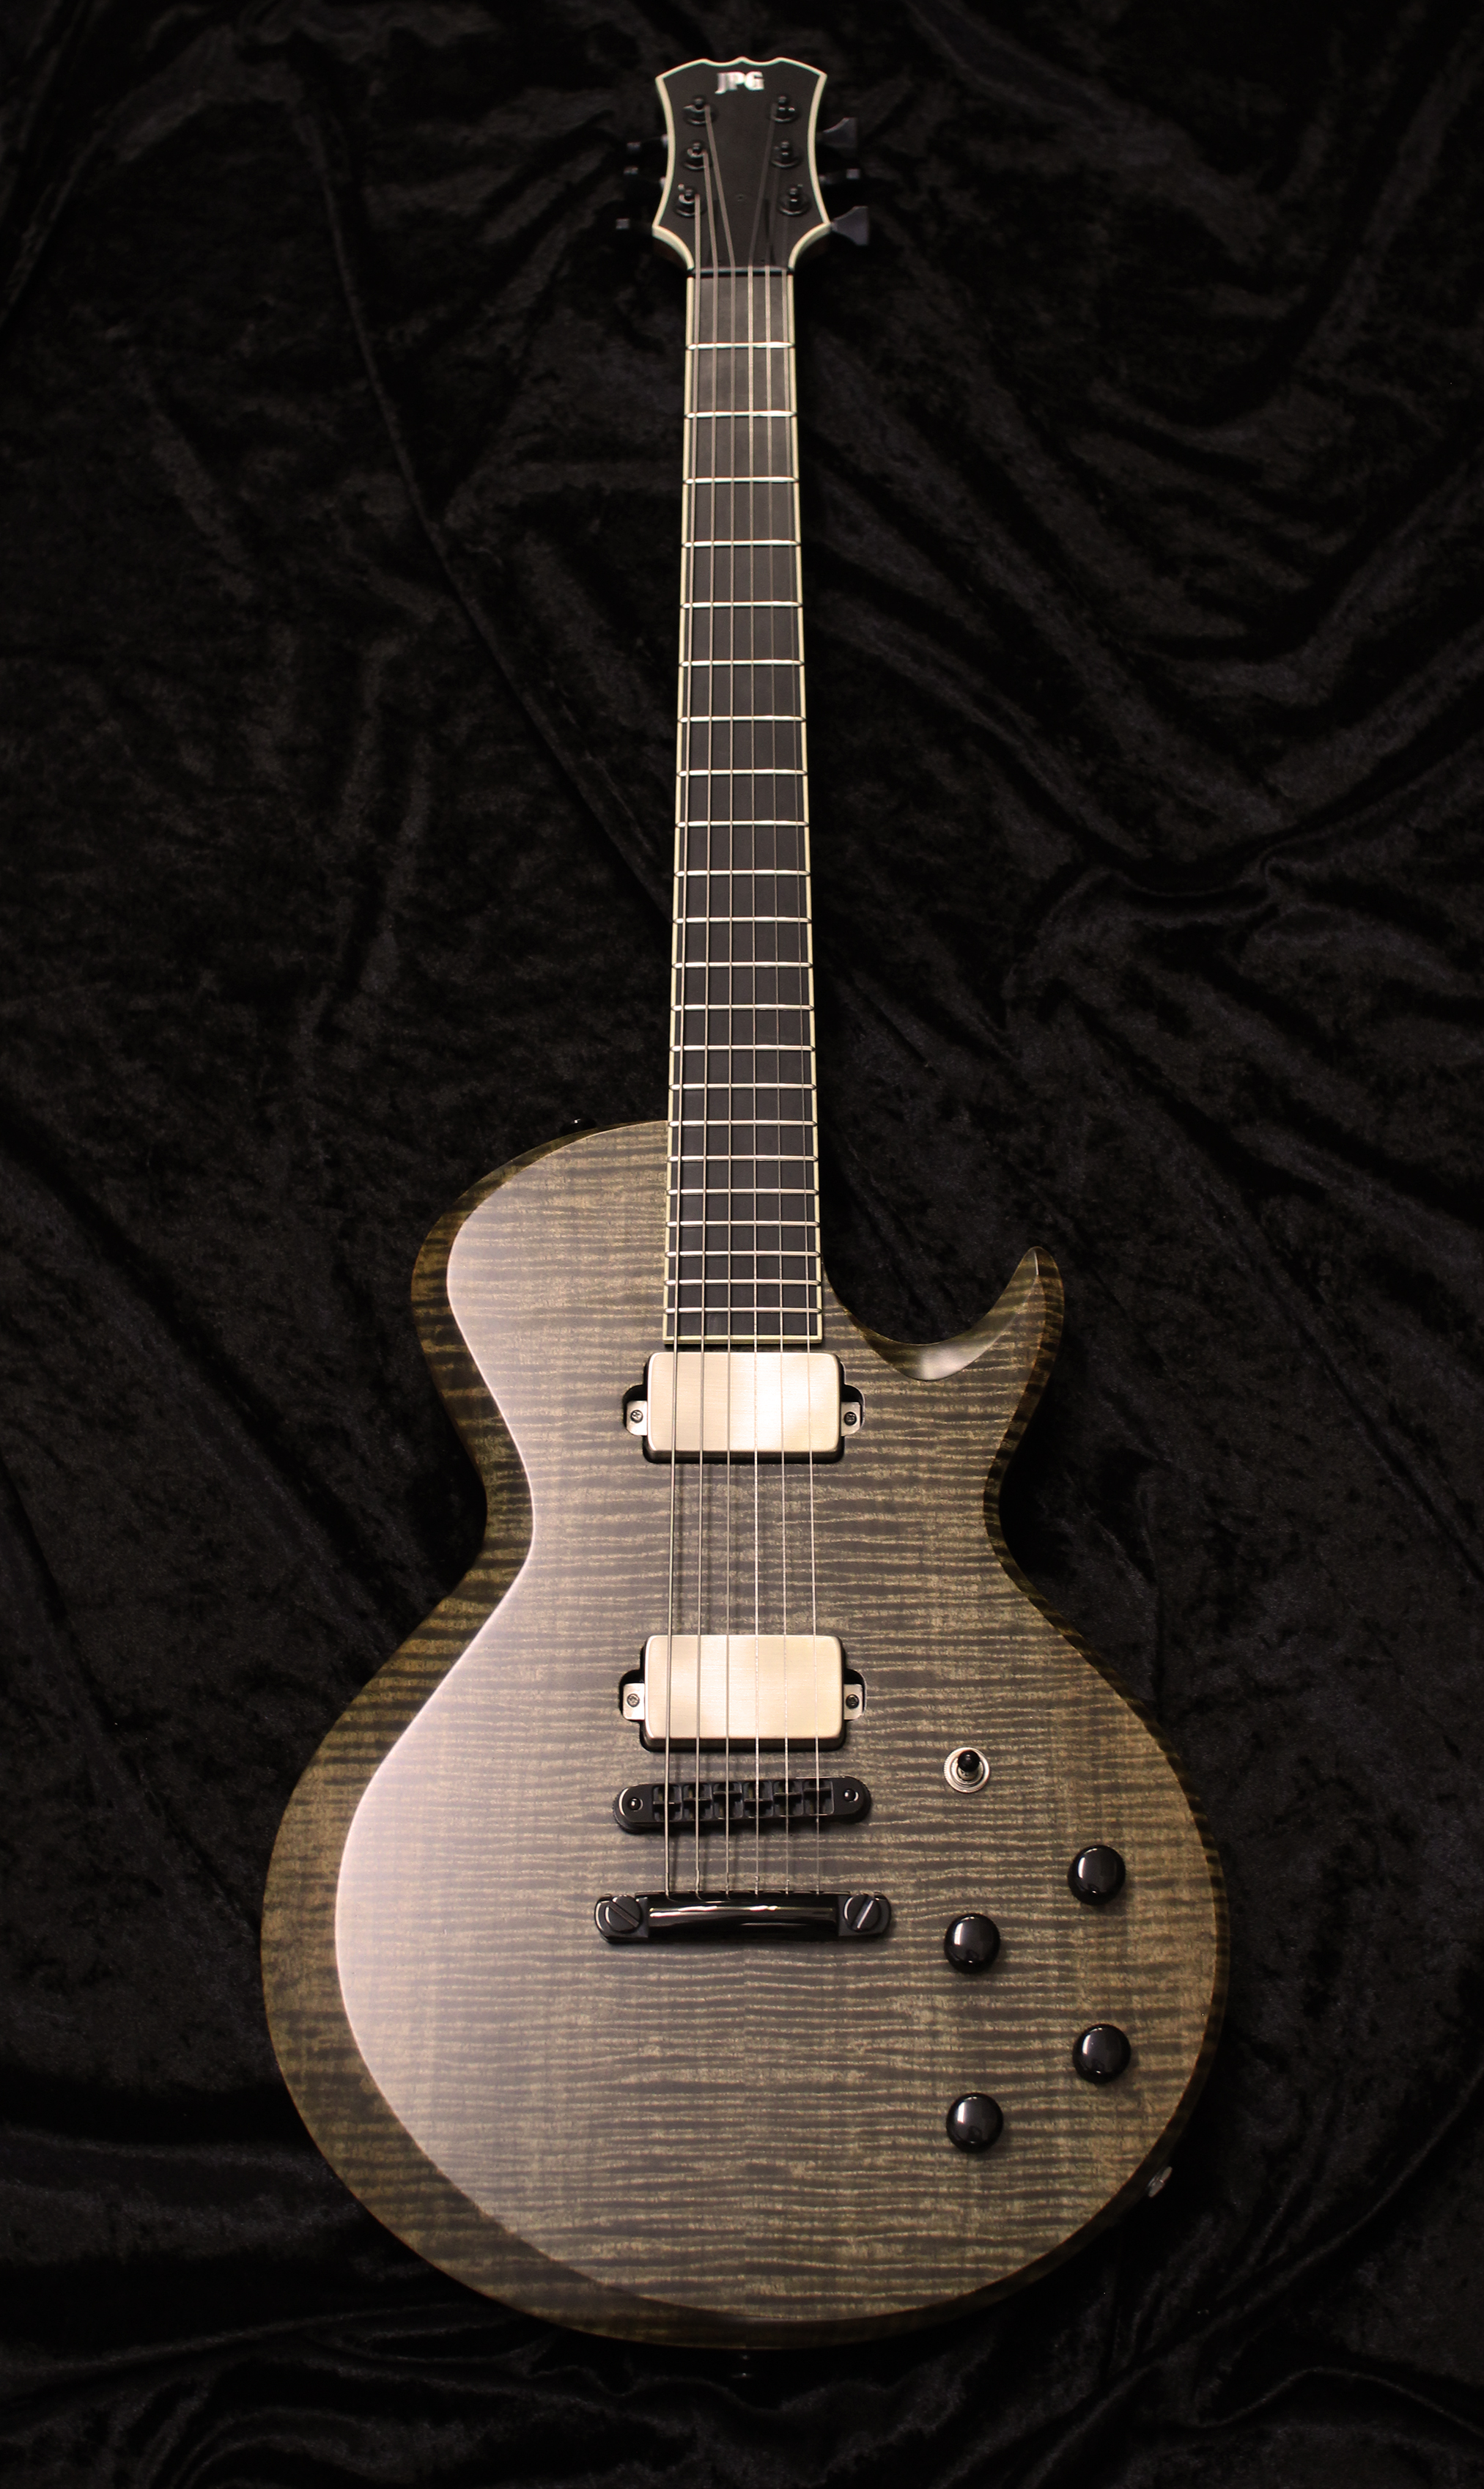 Sonic Titan - The Ultimate Riff Lord!!!Starting from £1,800